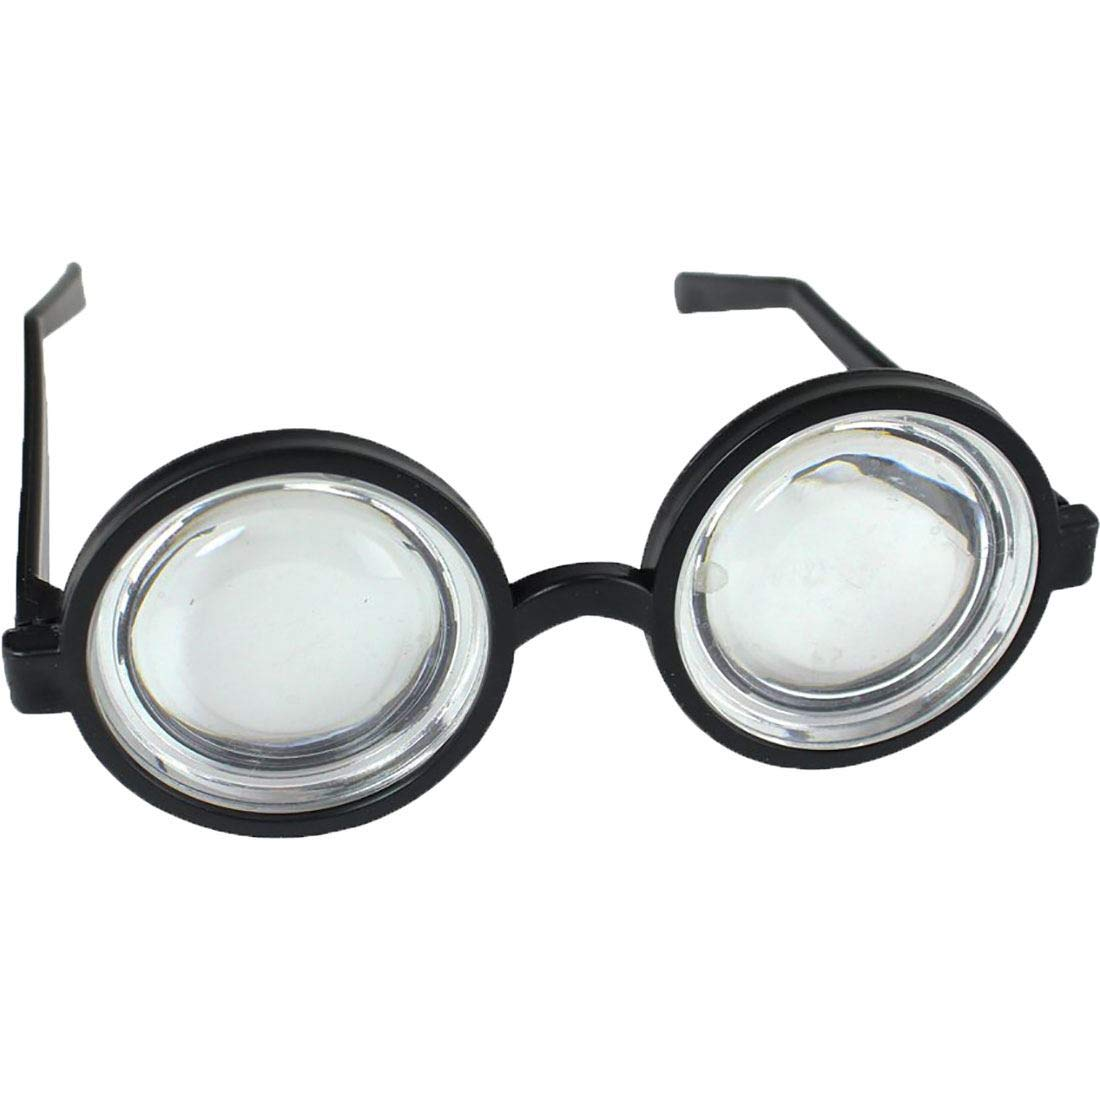 Kids Thick Bug Eyed Lenses Round Neck Glasses Childs Fancy School Play Accessory One Size